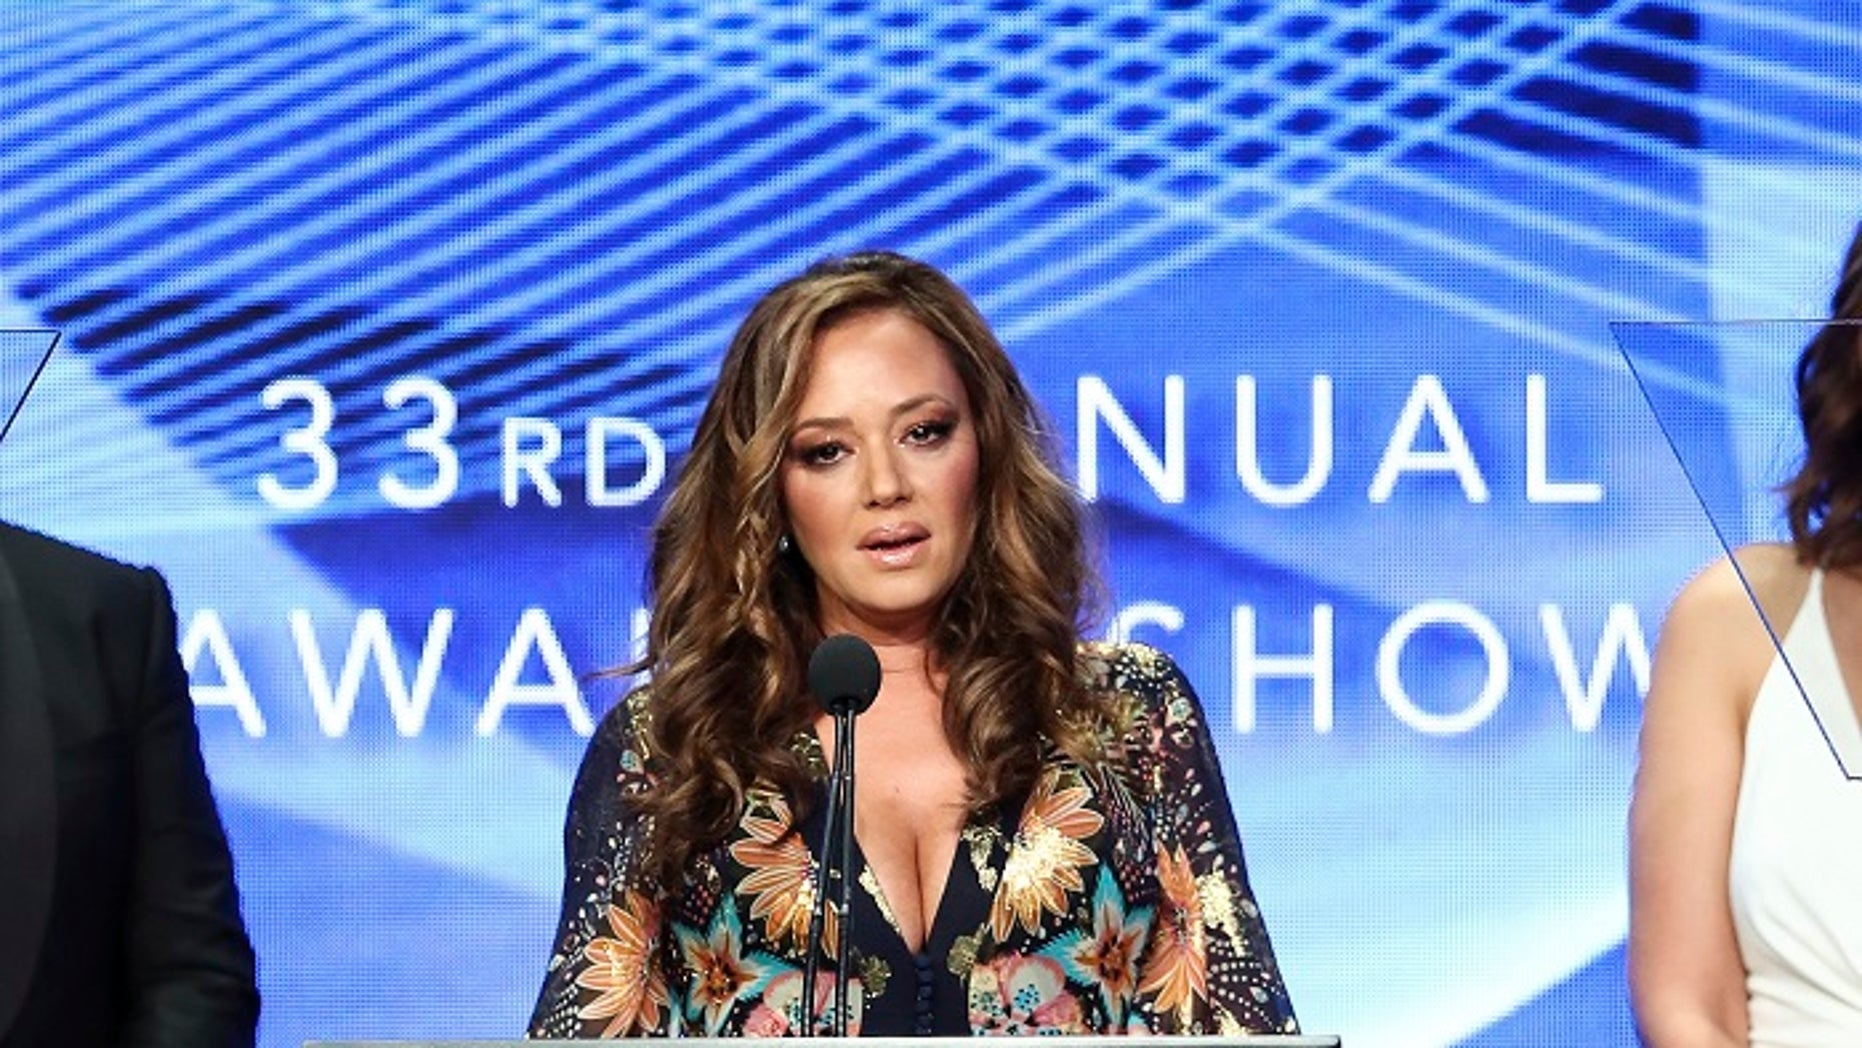 Leah Remini's show on A&E focuses on people who have left the Church of Scientology and what they endured while they were members.